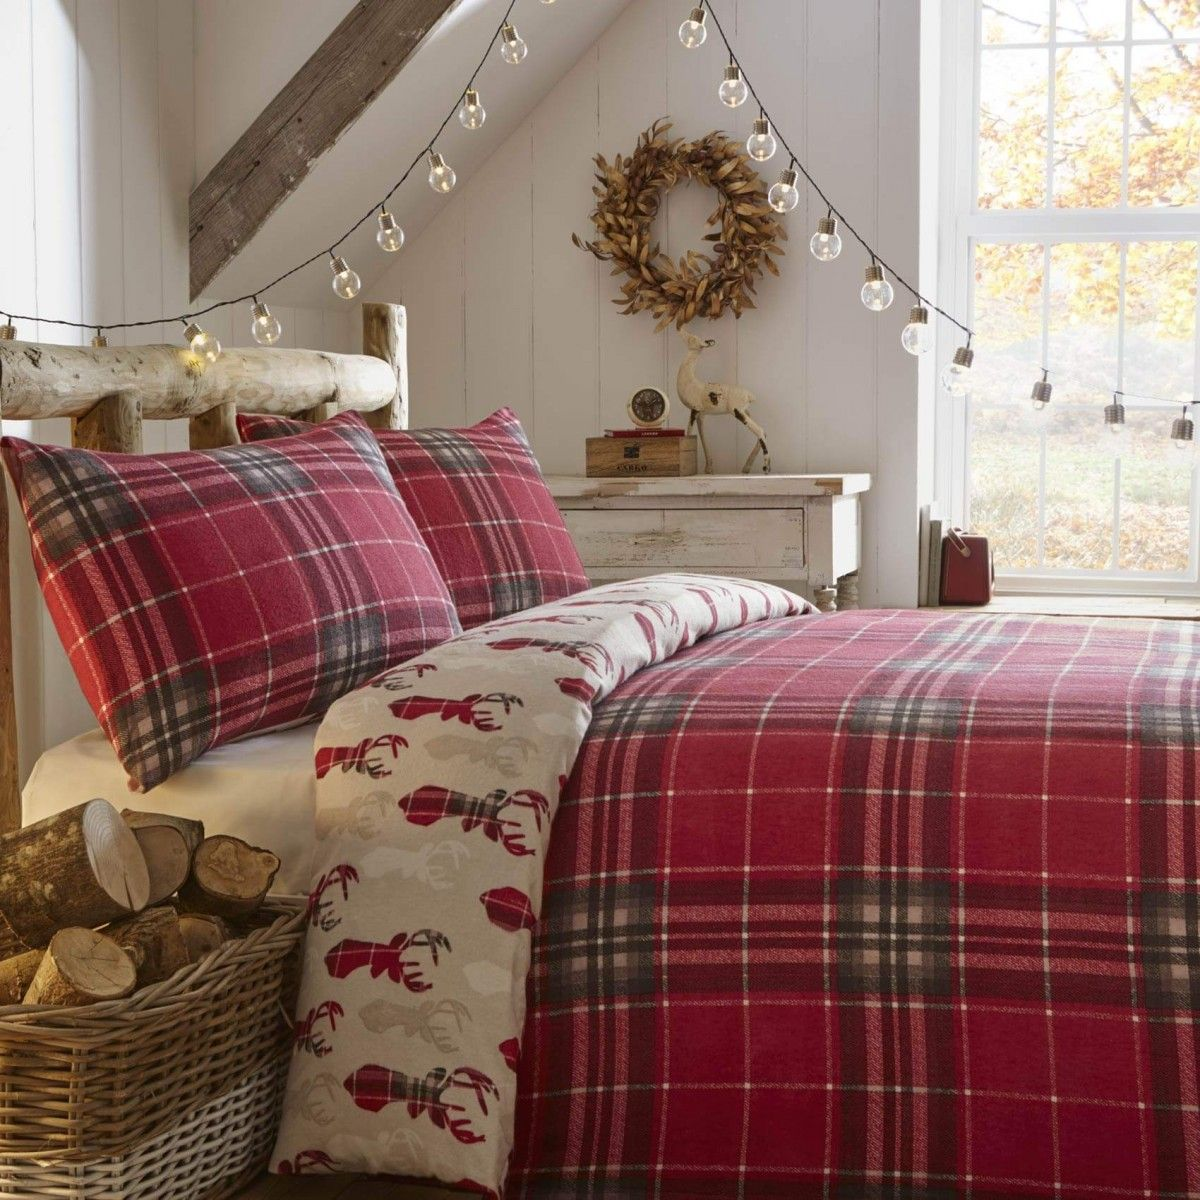 Fusion Tartan Stag Brushed Cotton Duvet Cover Set Red Christmas Bedding